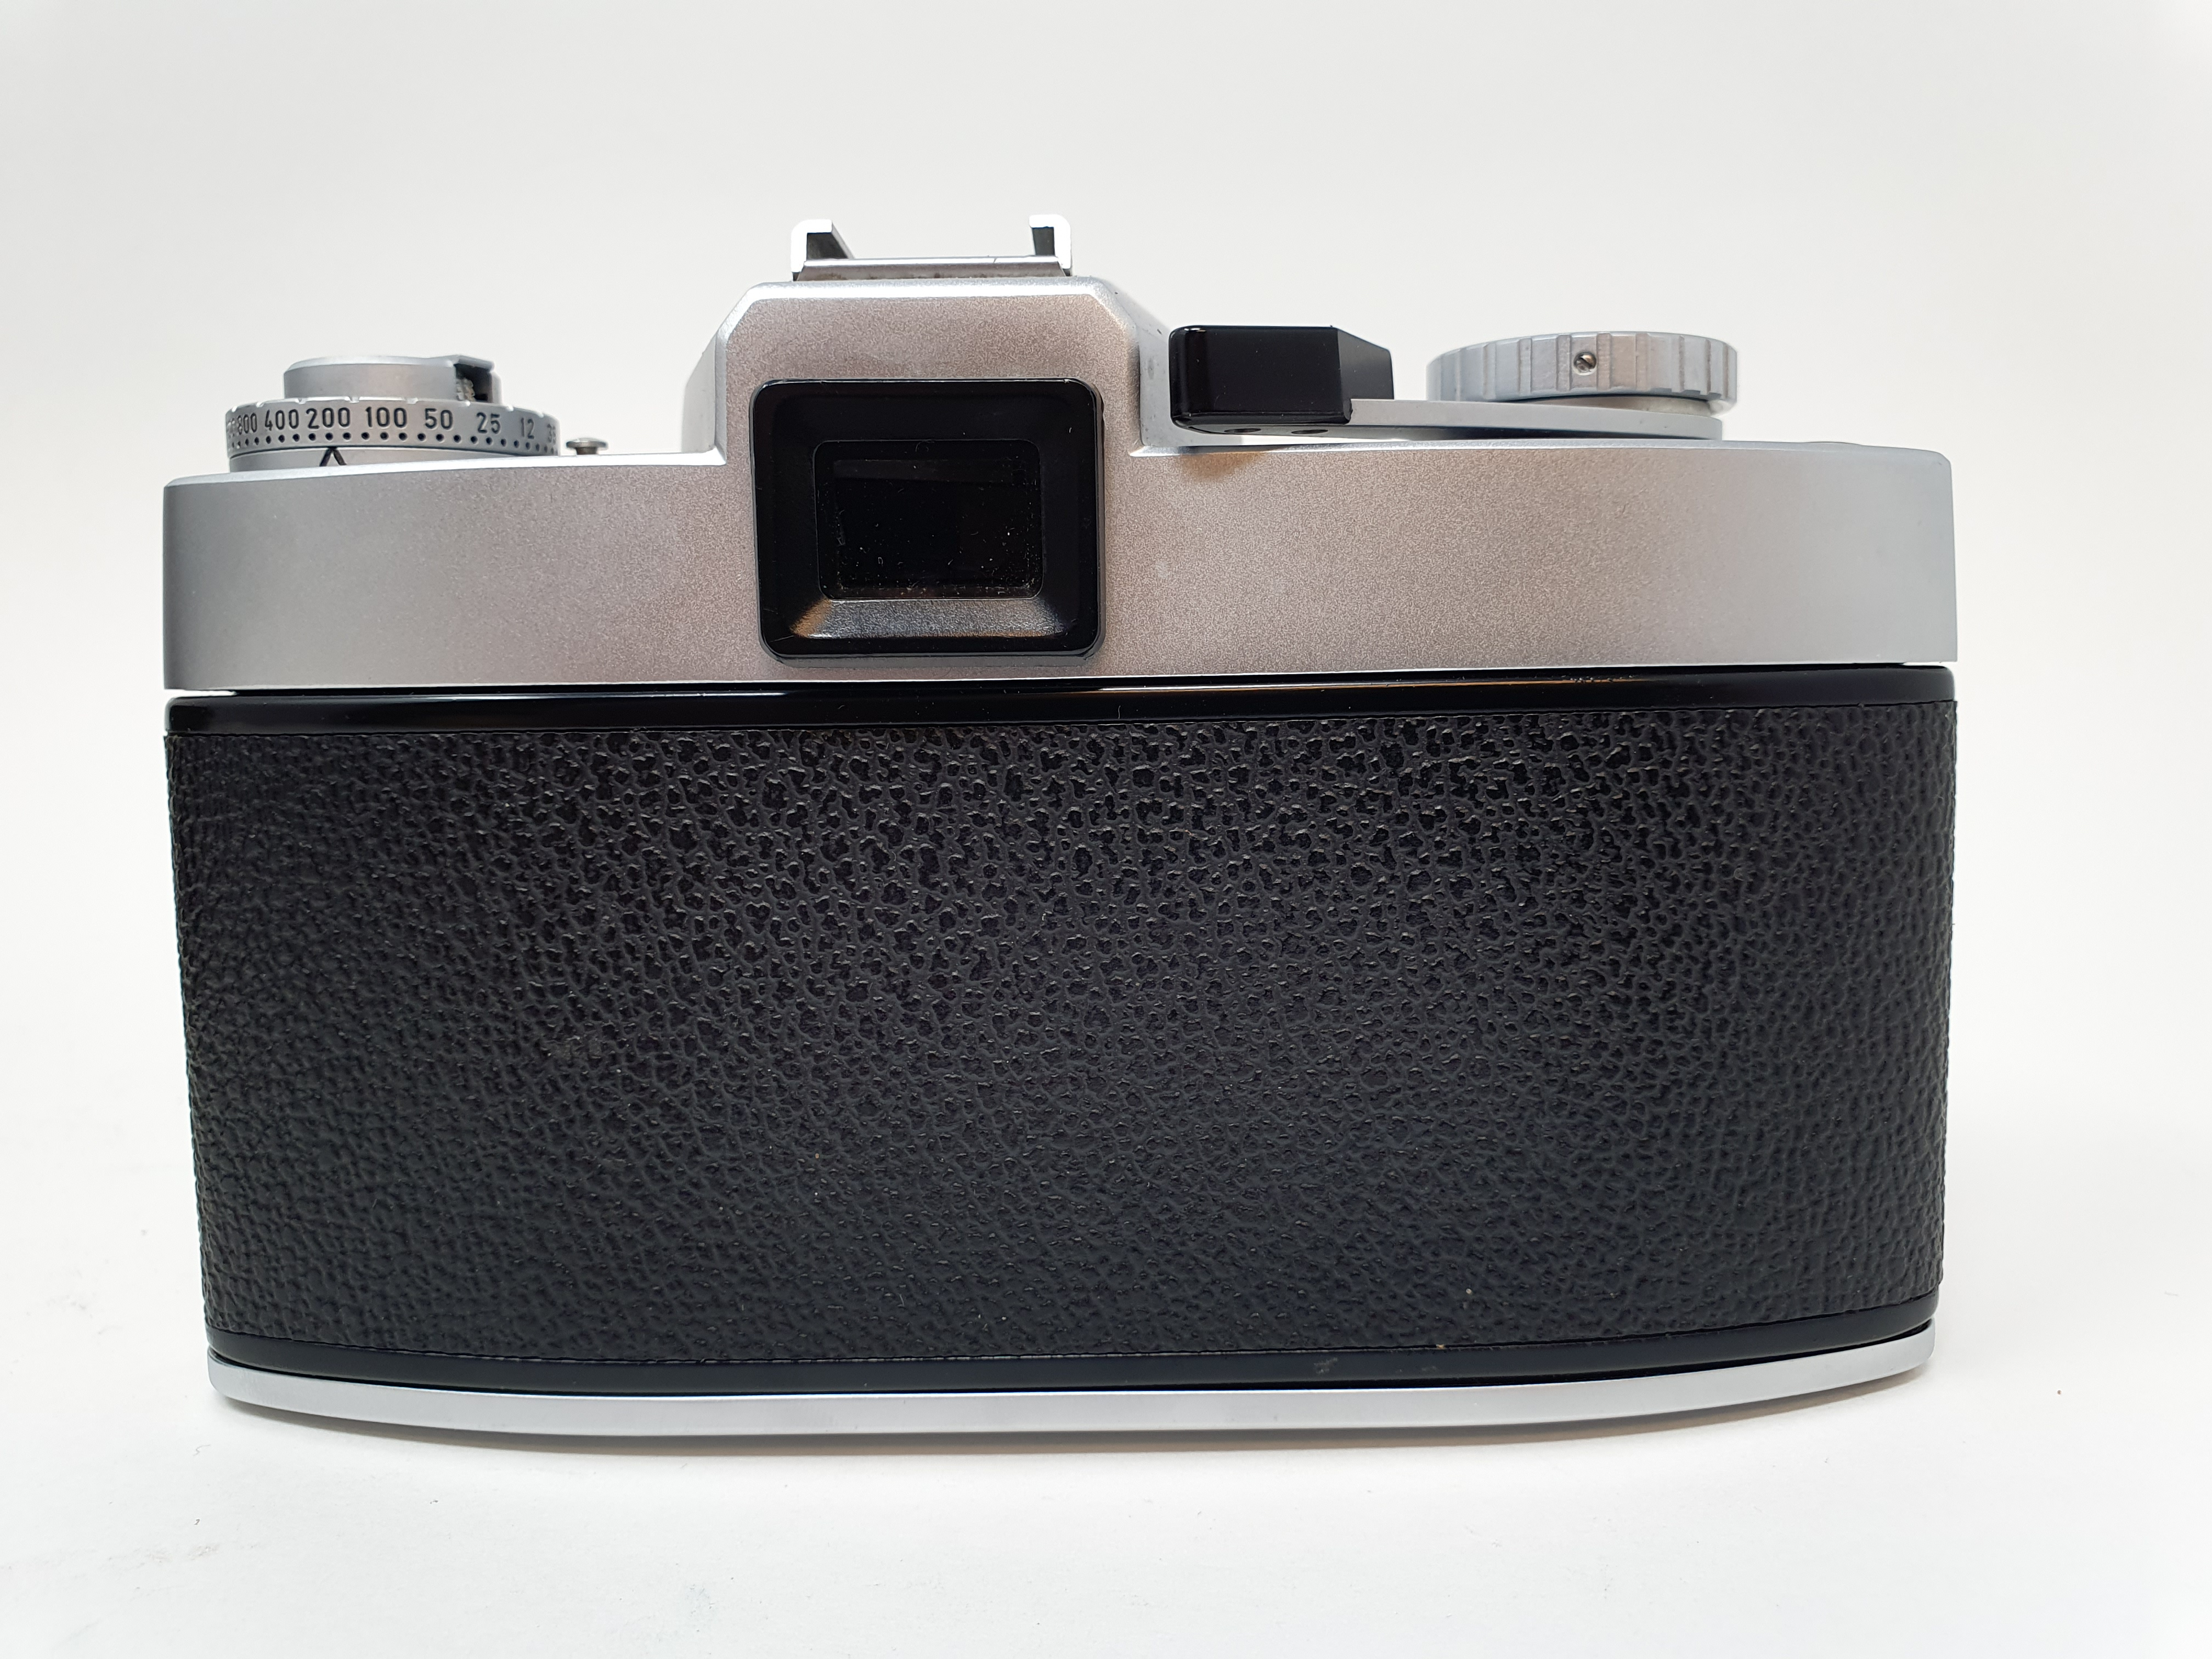 A Leica Leicaflex camera, serial number 1115659, with leather outer case Provenance: Part of a - Image 4 of 5